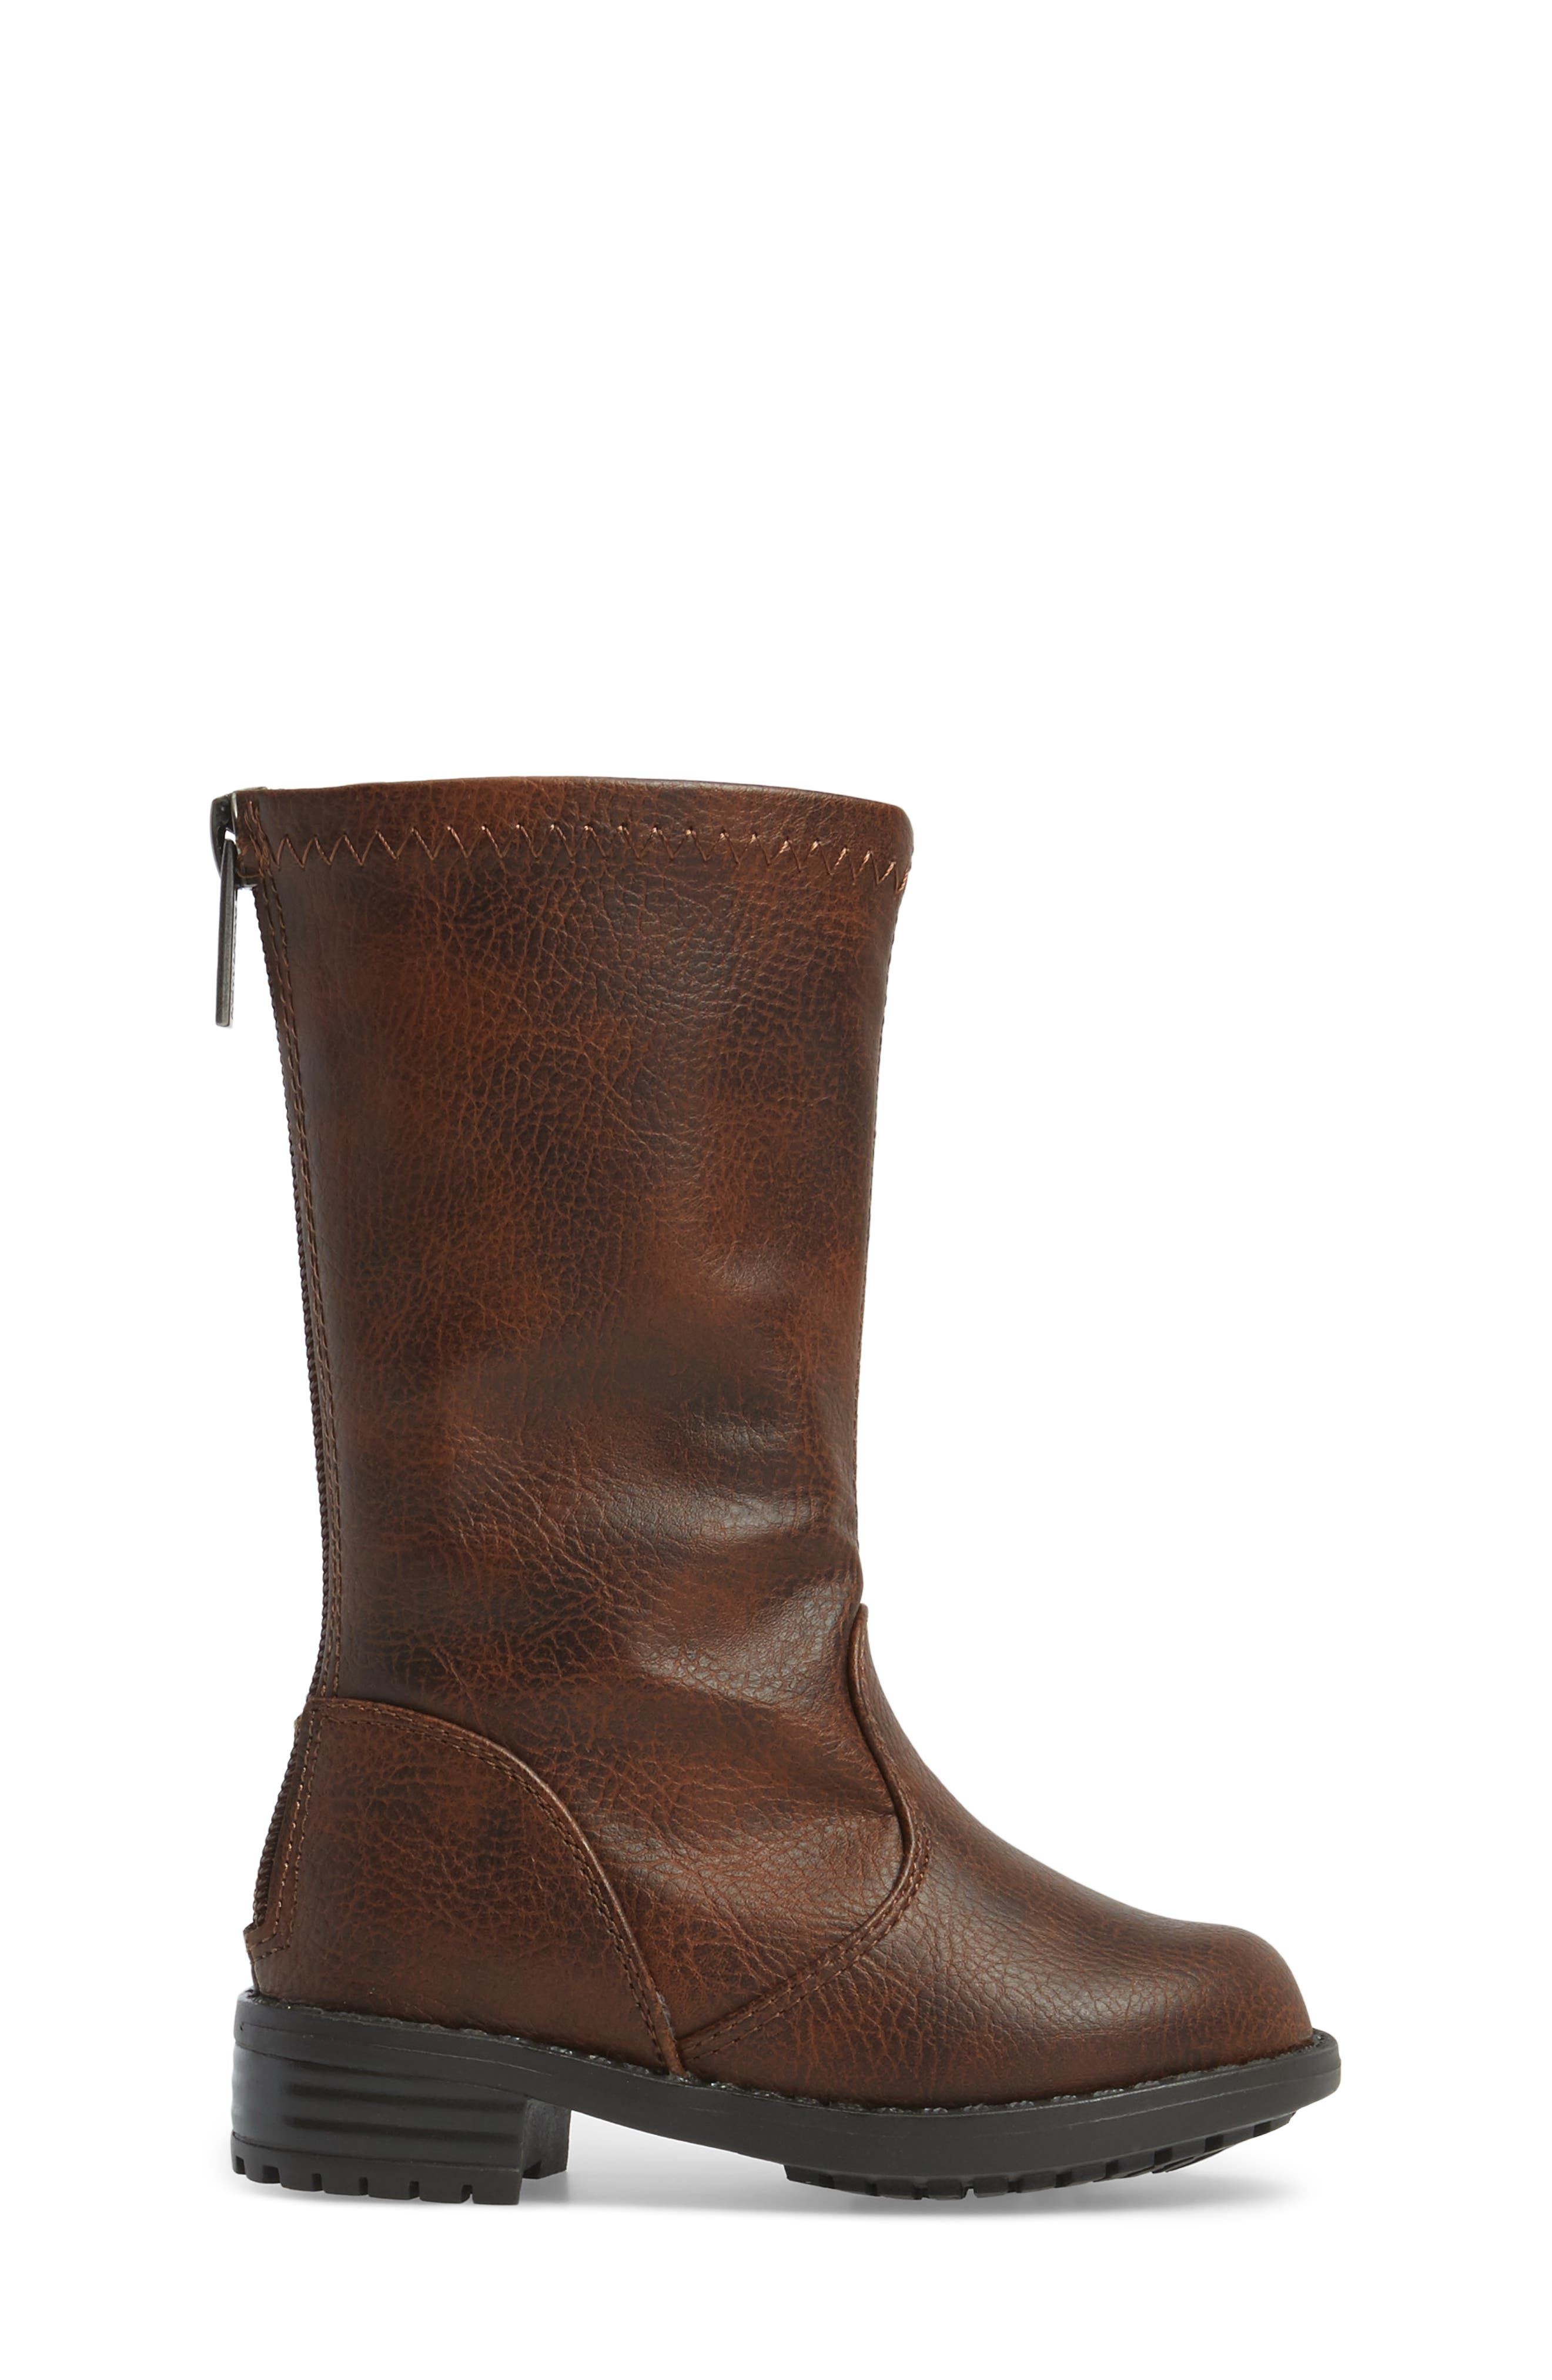 Autumn Stretch Boot,                             Alternate thumbnail 3, color,                             Distressed Brown Faux Leather